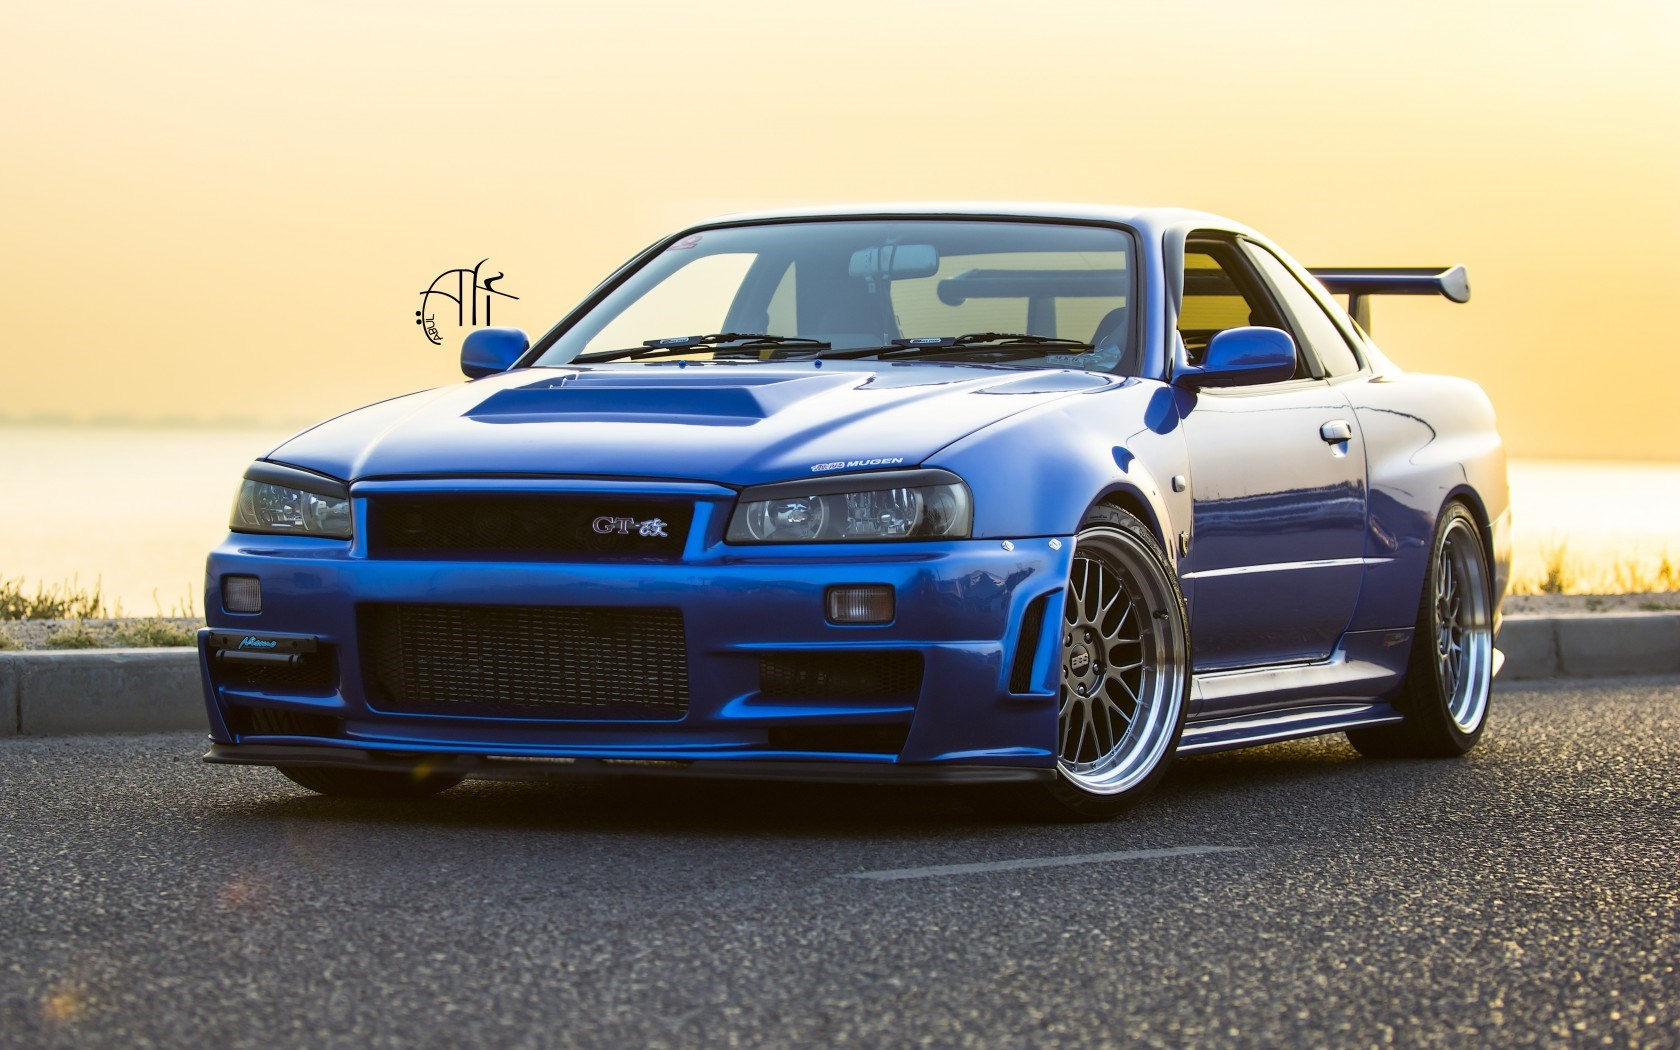 nissan skyline gt r r34 car wheels tuning wallpaper. Black Bedroom Furniture Sets. Home Design Ideas